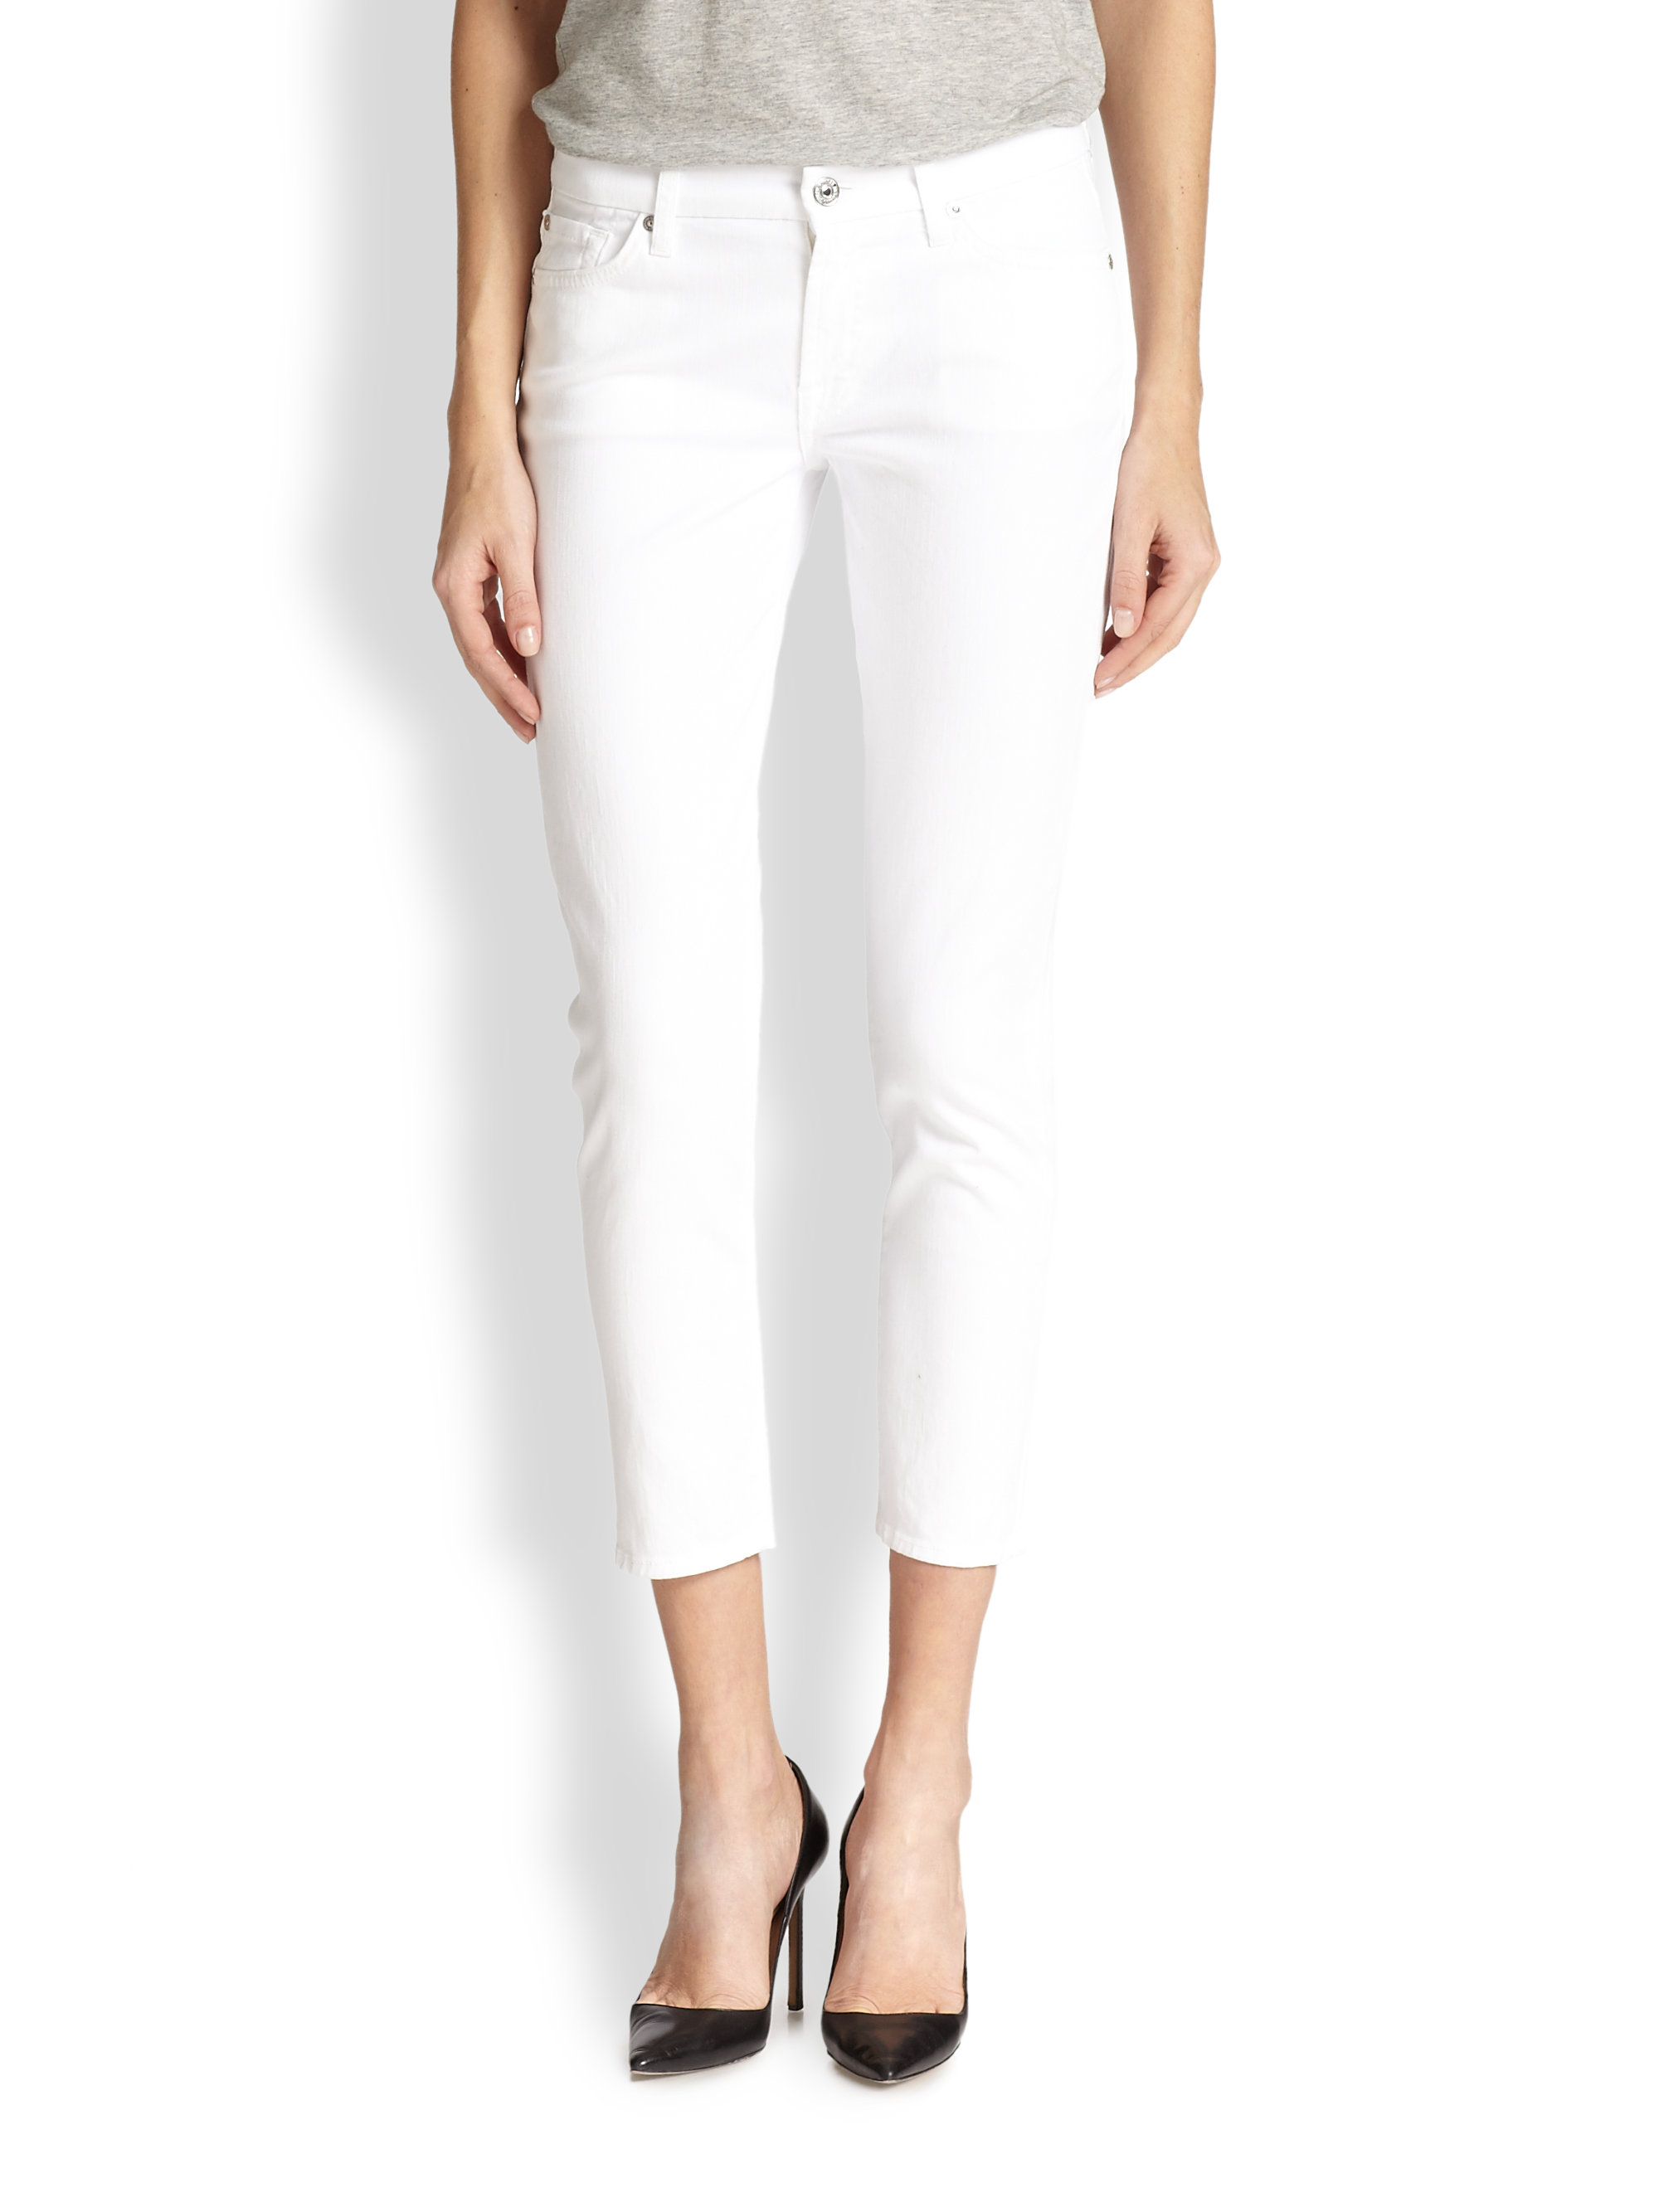 7 for all mankind Kimmie Cropped Skinny Jeans in White | Lyst